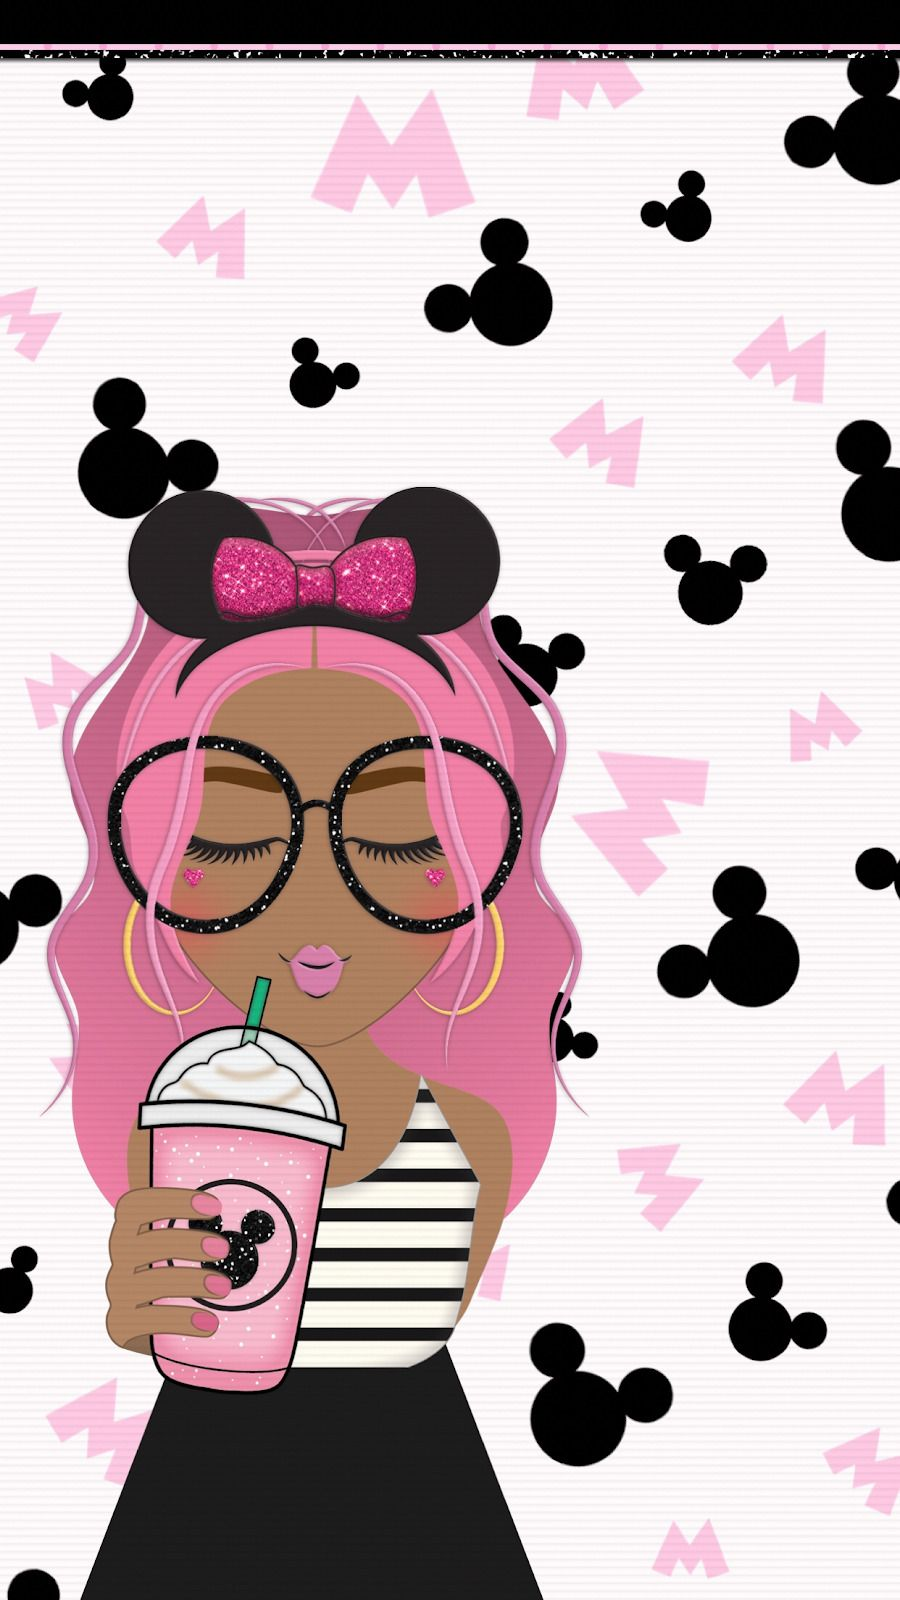 Wallpapers Xo Nikkix I Love These Cute Wallpapers Made By Cute Disney Wallpaper Starbucks Wallpaper Mickey Mouse Wallpaper